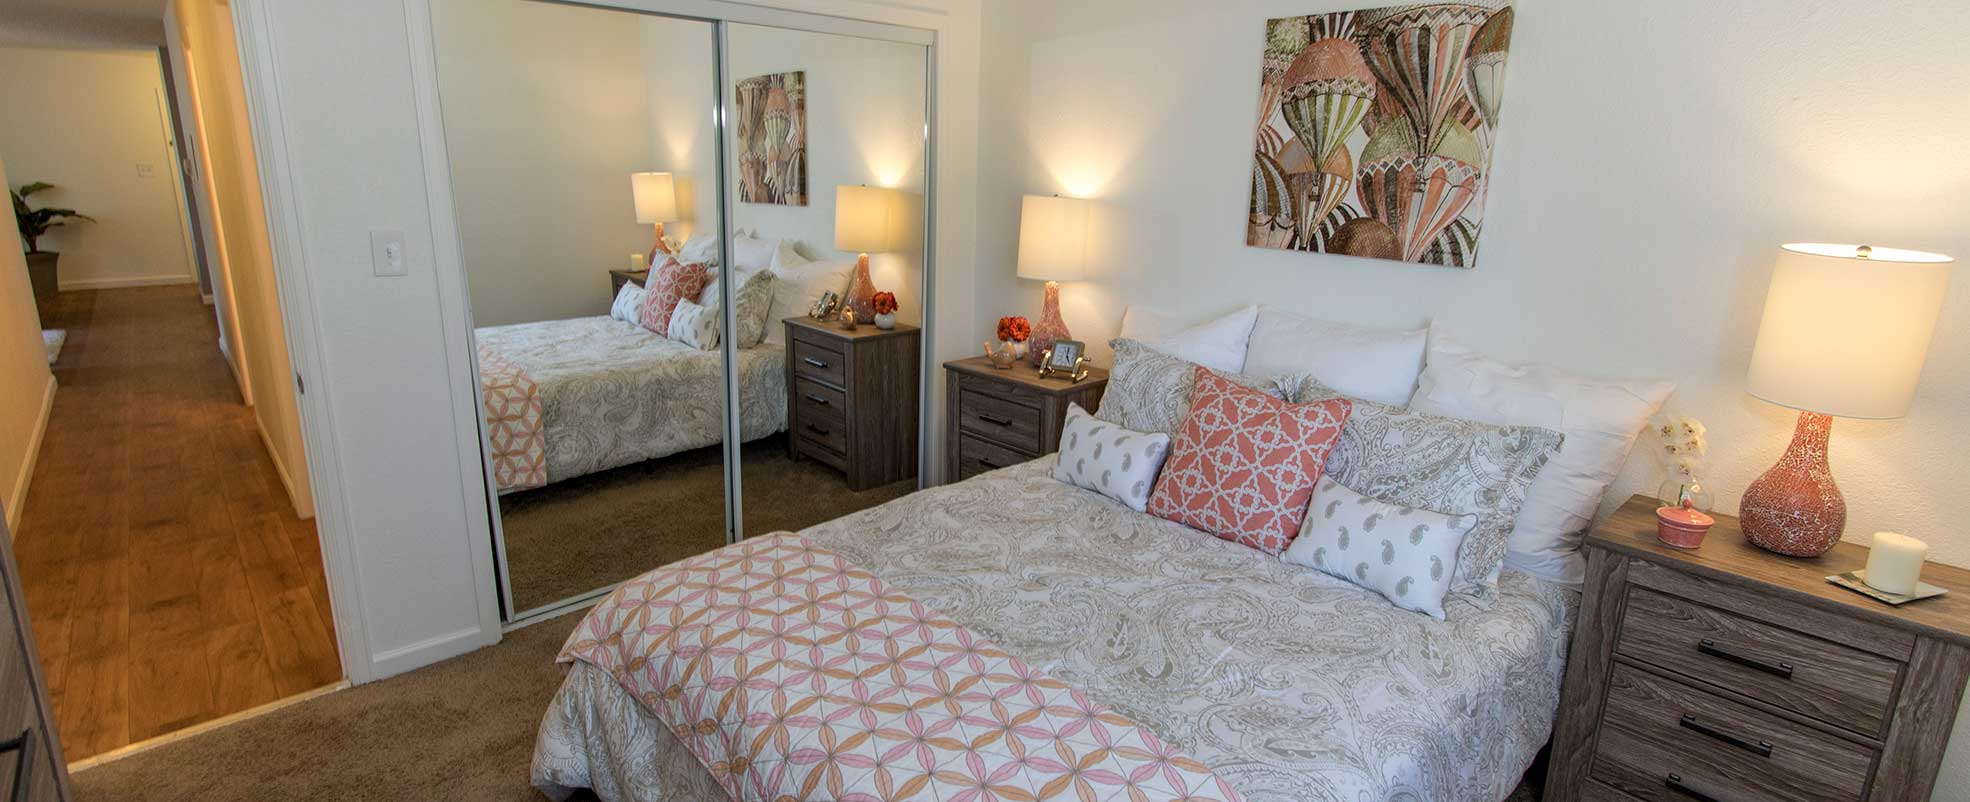 Highland Legends Apartments & Townhomes - 1, 2 & 3 Bedroom ...